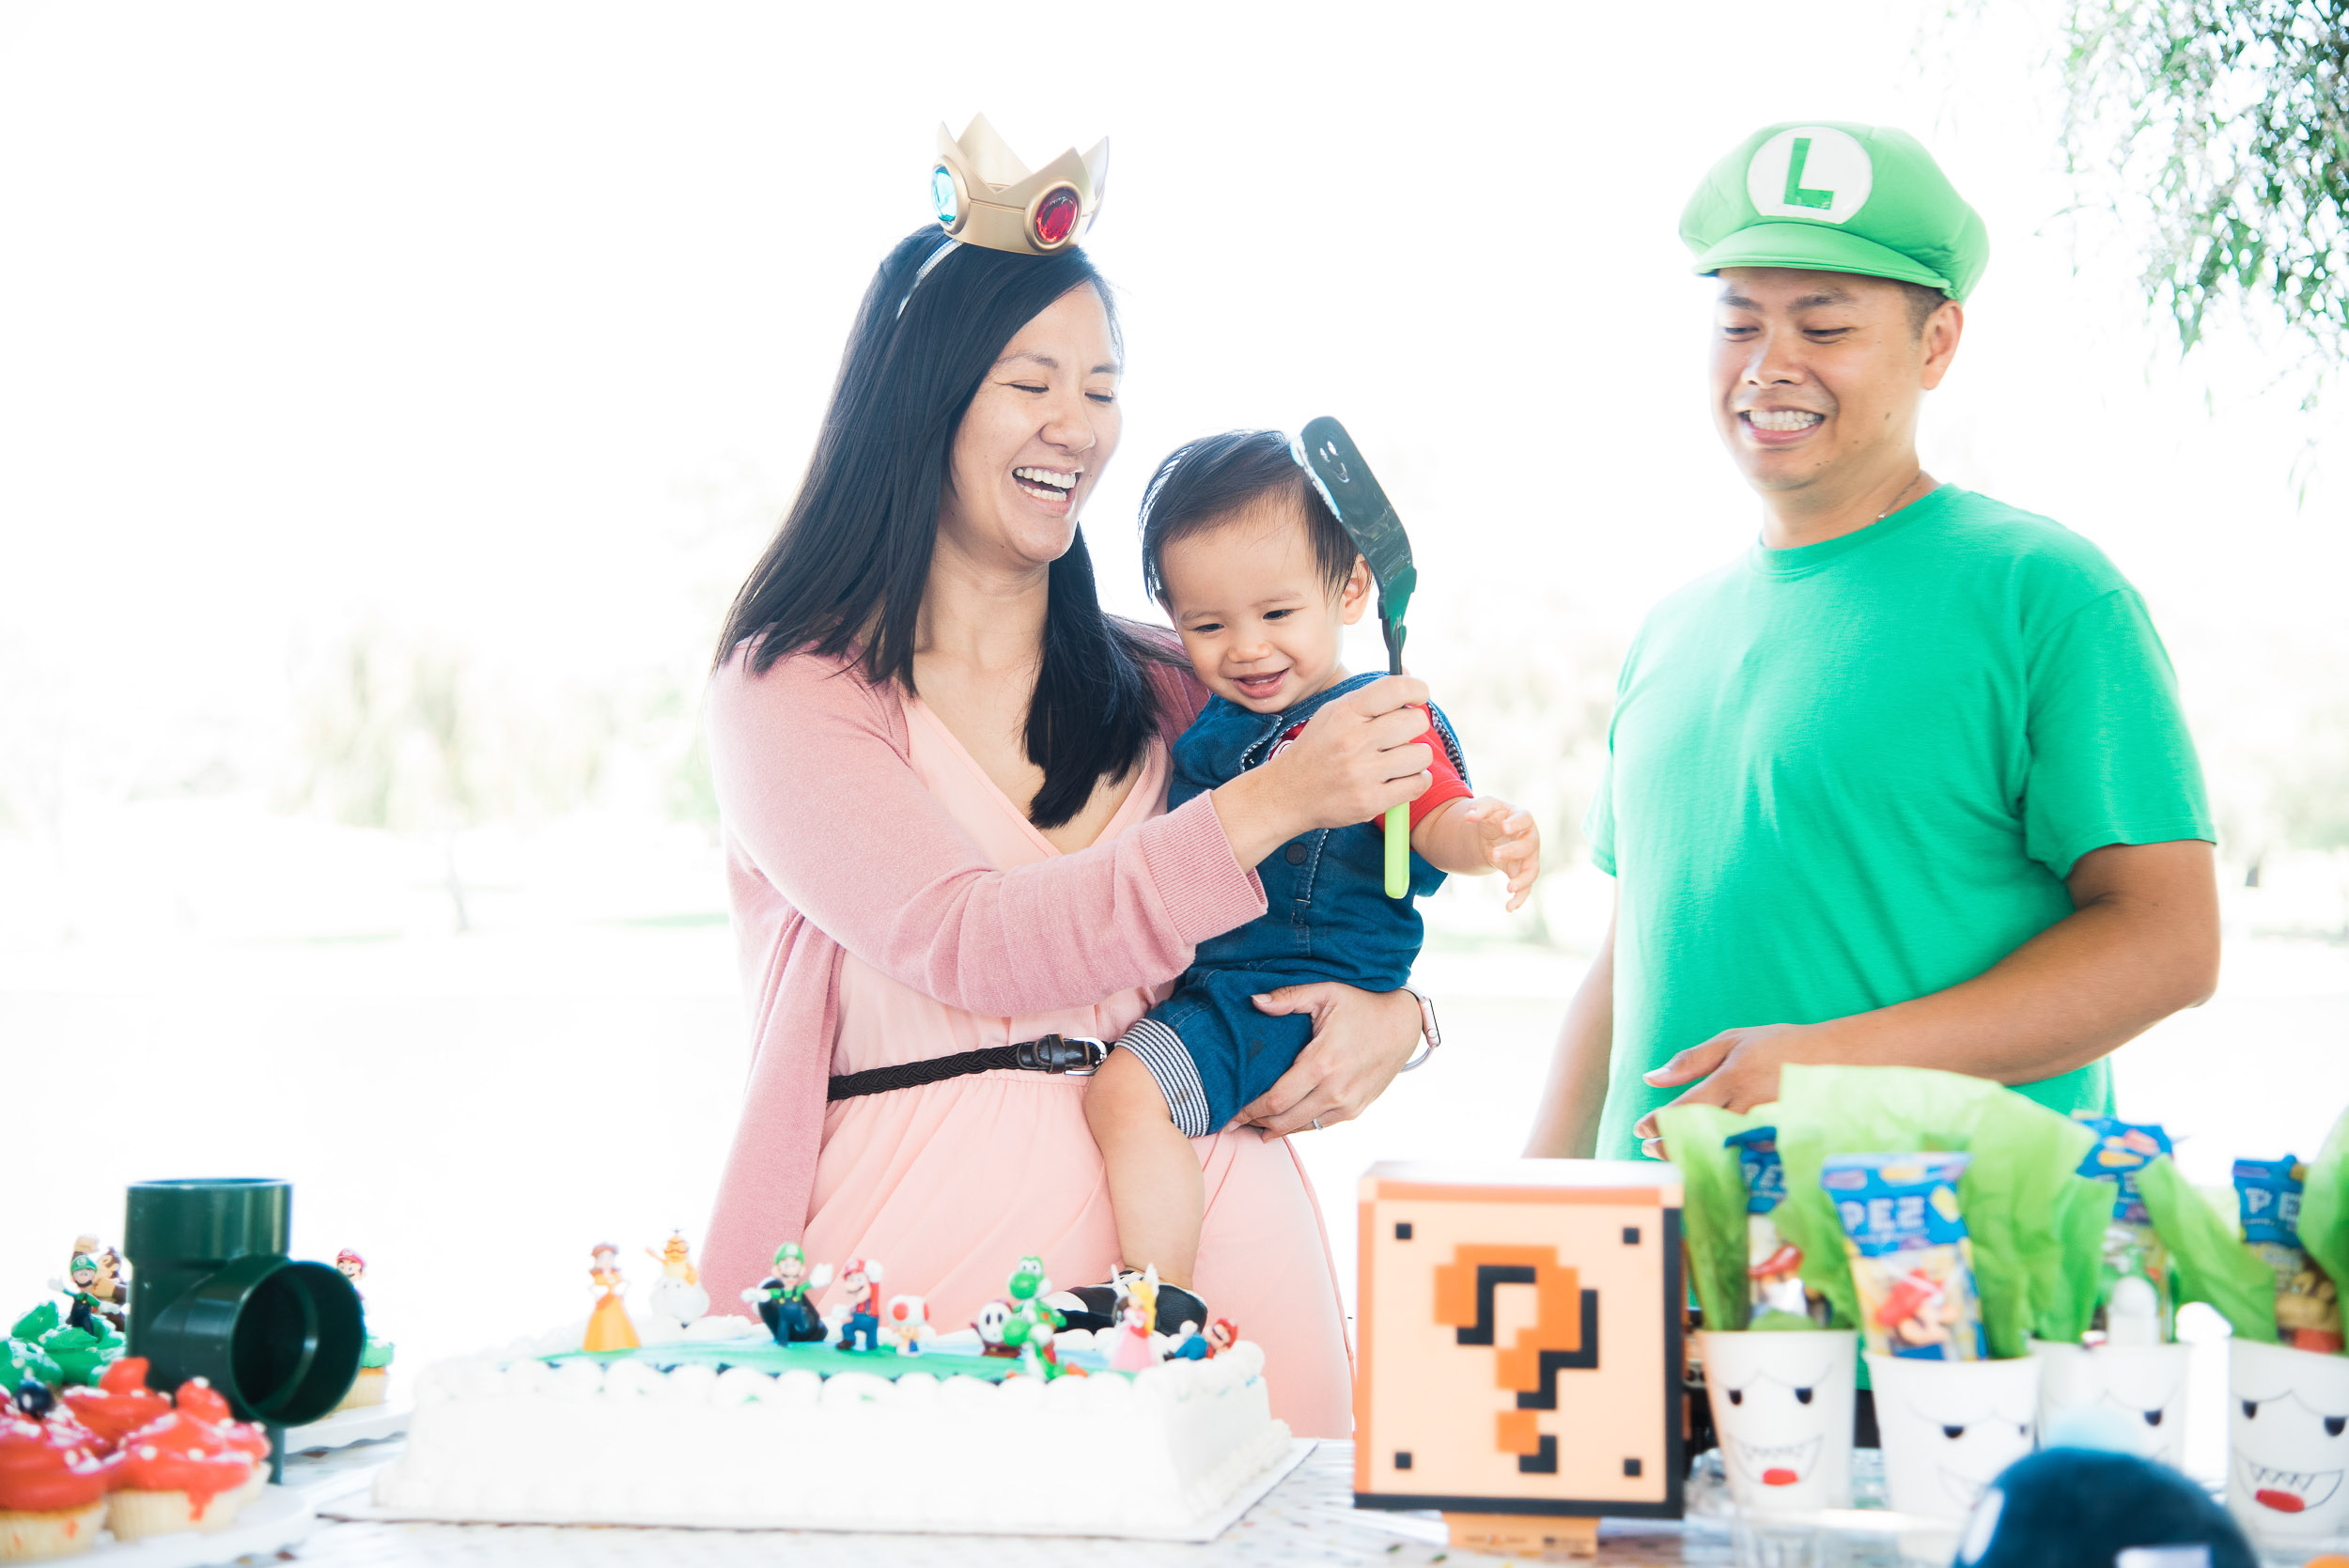 Bryan-Miraflor-Photography-Davin-First-Birthday-Irvine-20170603-0550.jpg